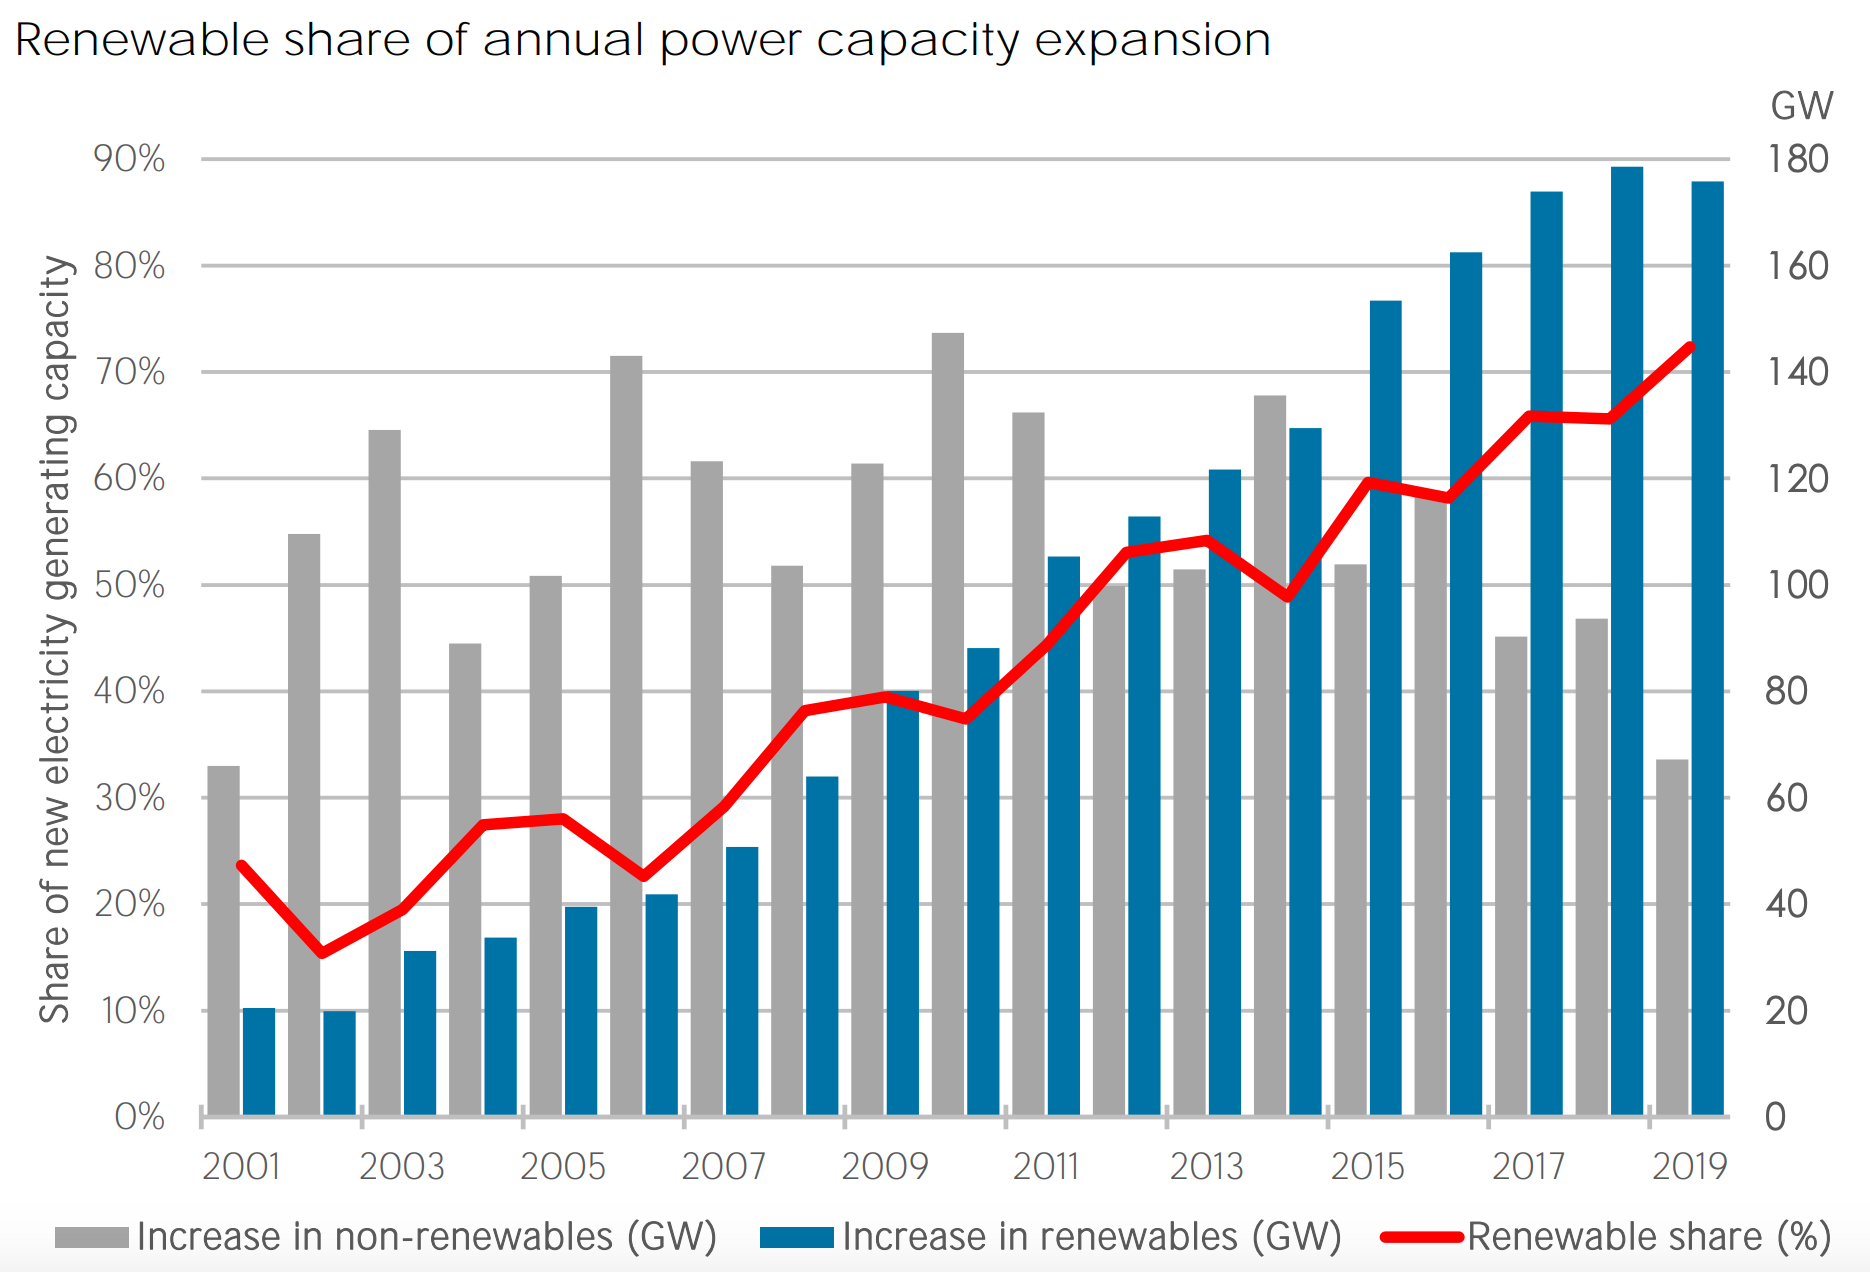 Renewable energy share of annual power capacity expansion